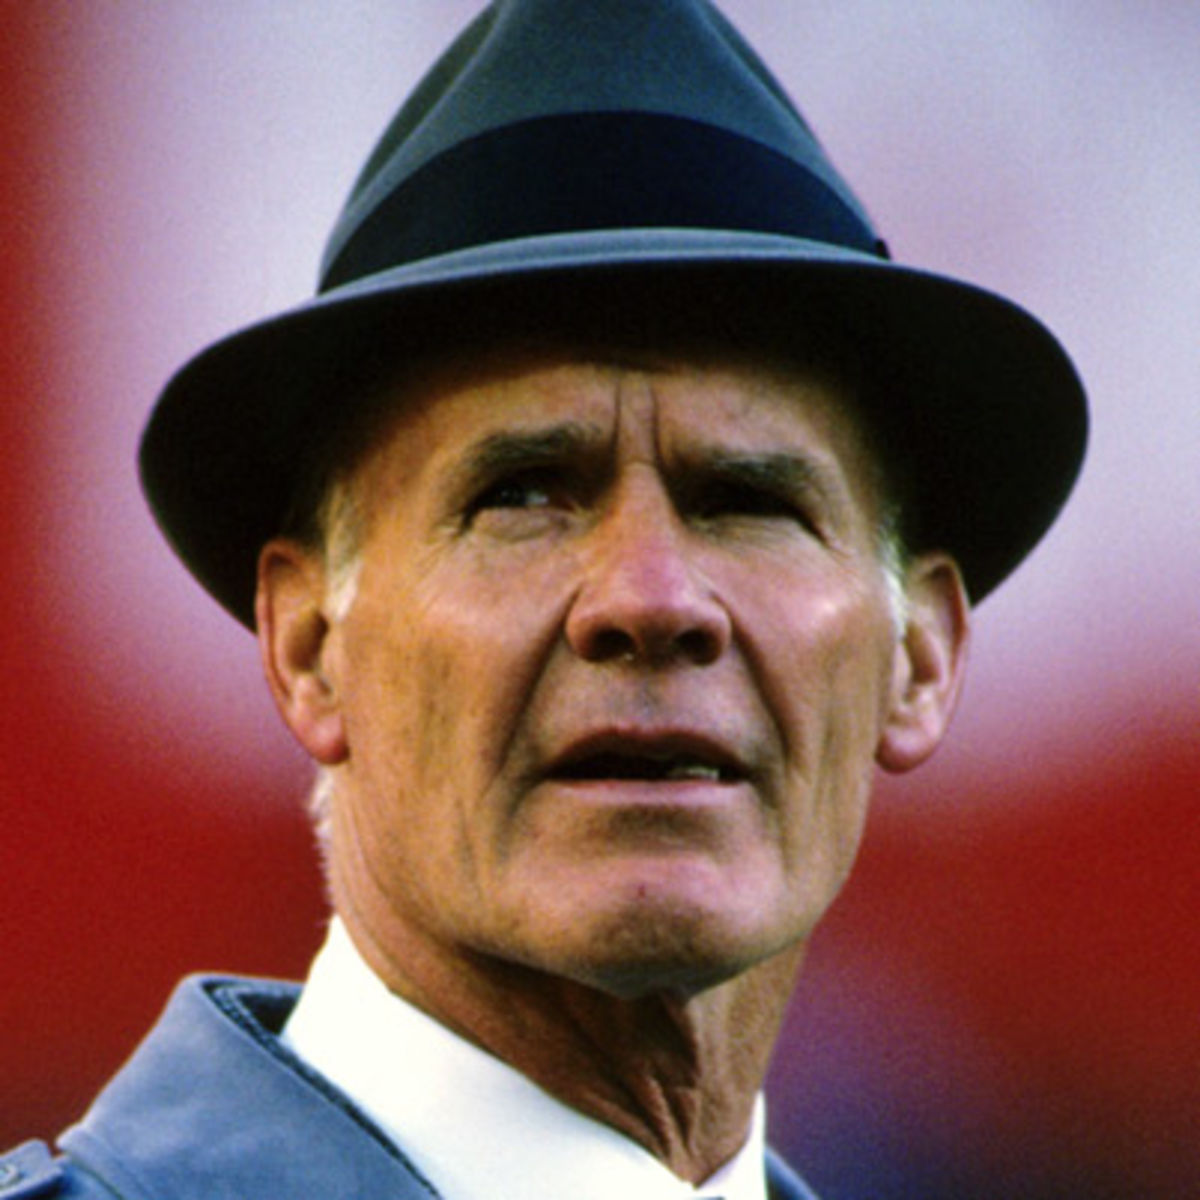 Cowboys Blog - From Giant to Cowboy, The Great Tom Landry